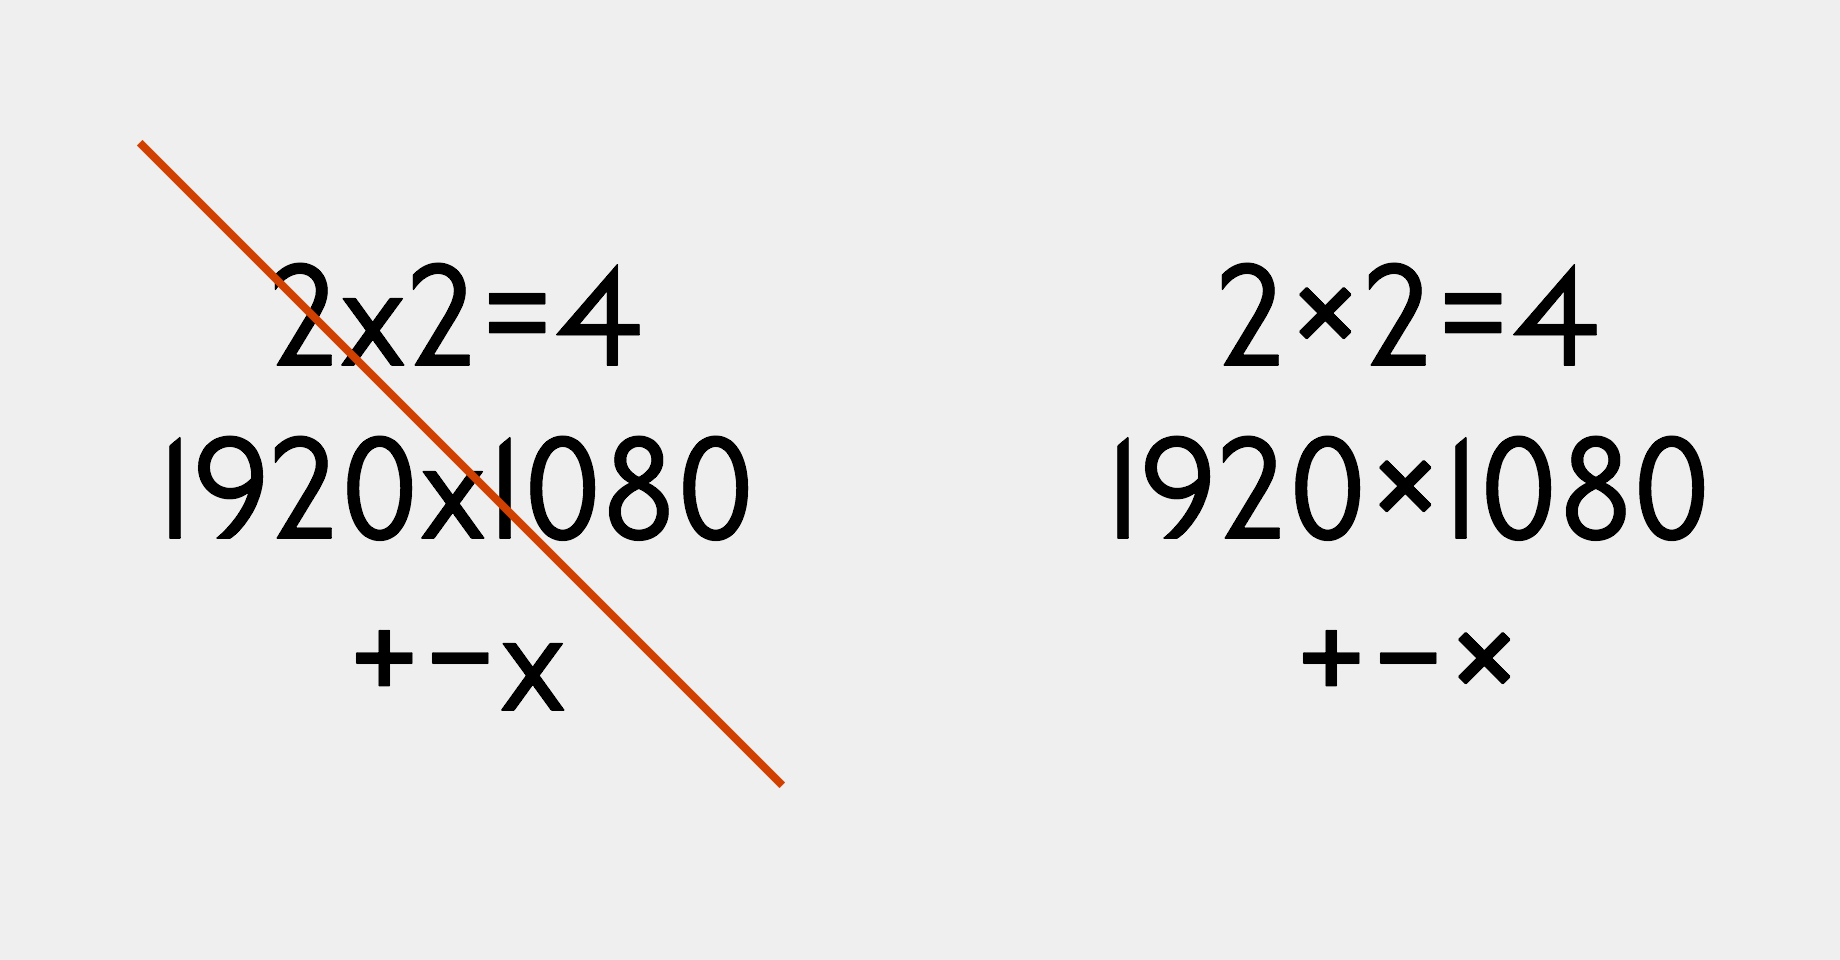 the letter x is not a multiplication sign